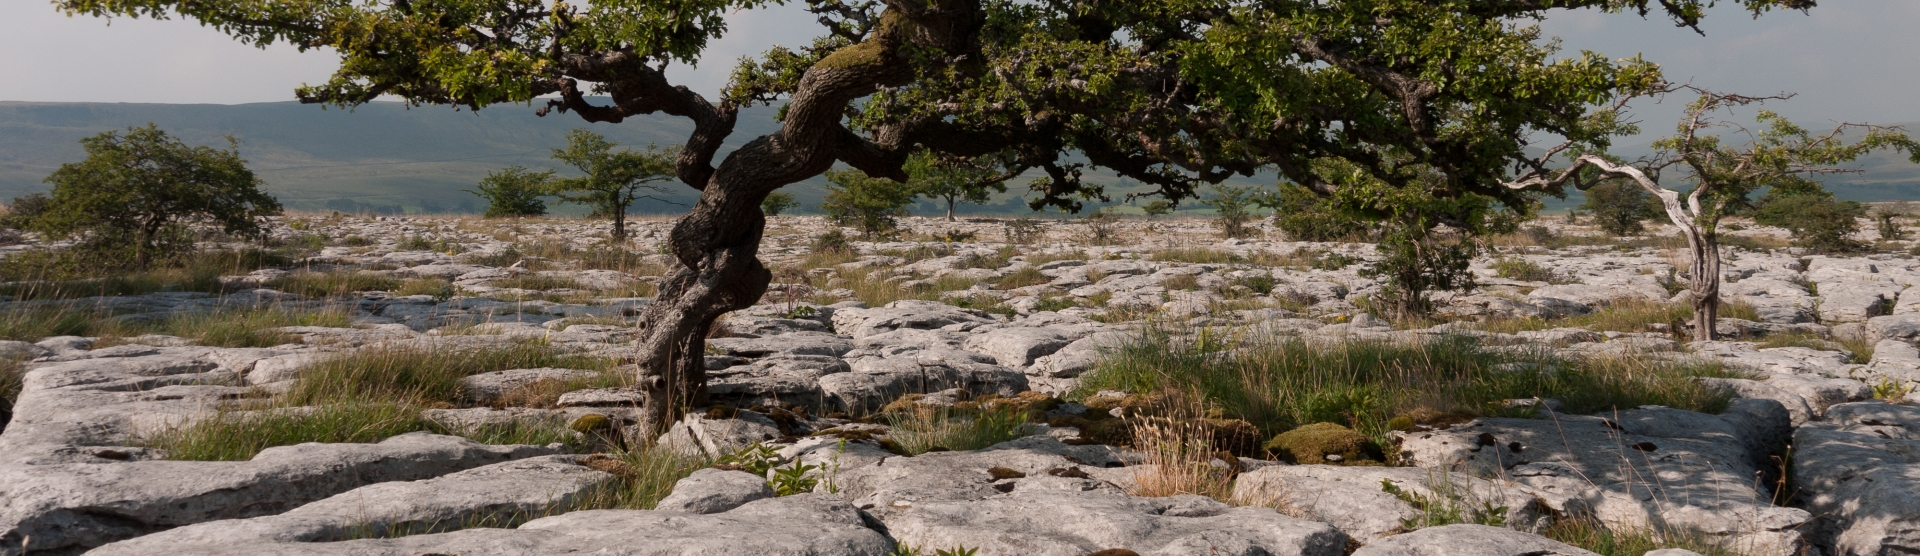 Limestone pavement at Hutton Roof, Cumbria credit Kerry Milligan